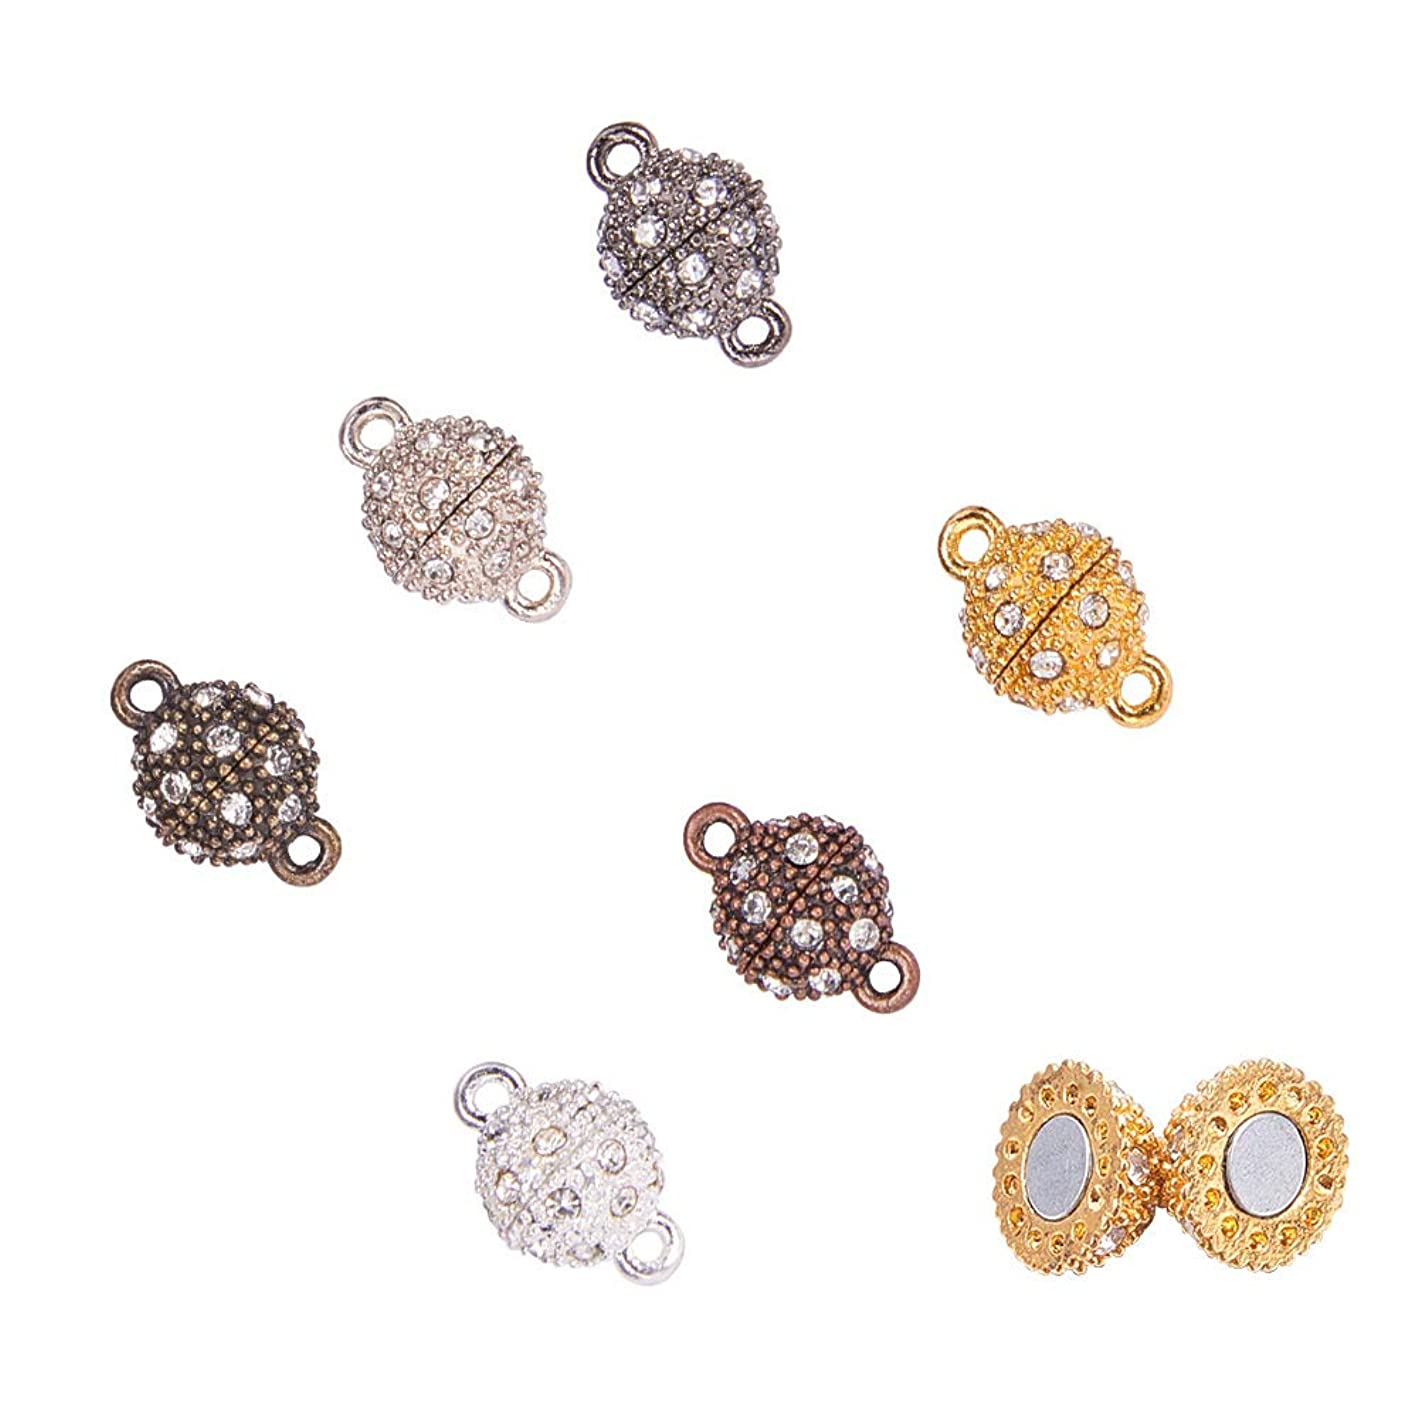 PH PandaHall 24 Sets 6 Color Rhinestone Ball Magnetic Beads Clasp Buckle for Bracelet Necklace Jewelry m79123550483398